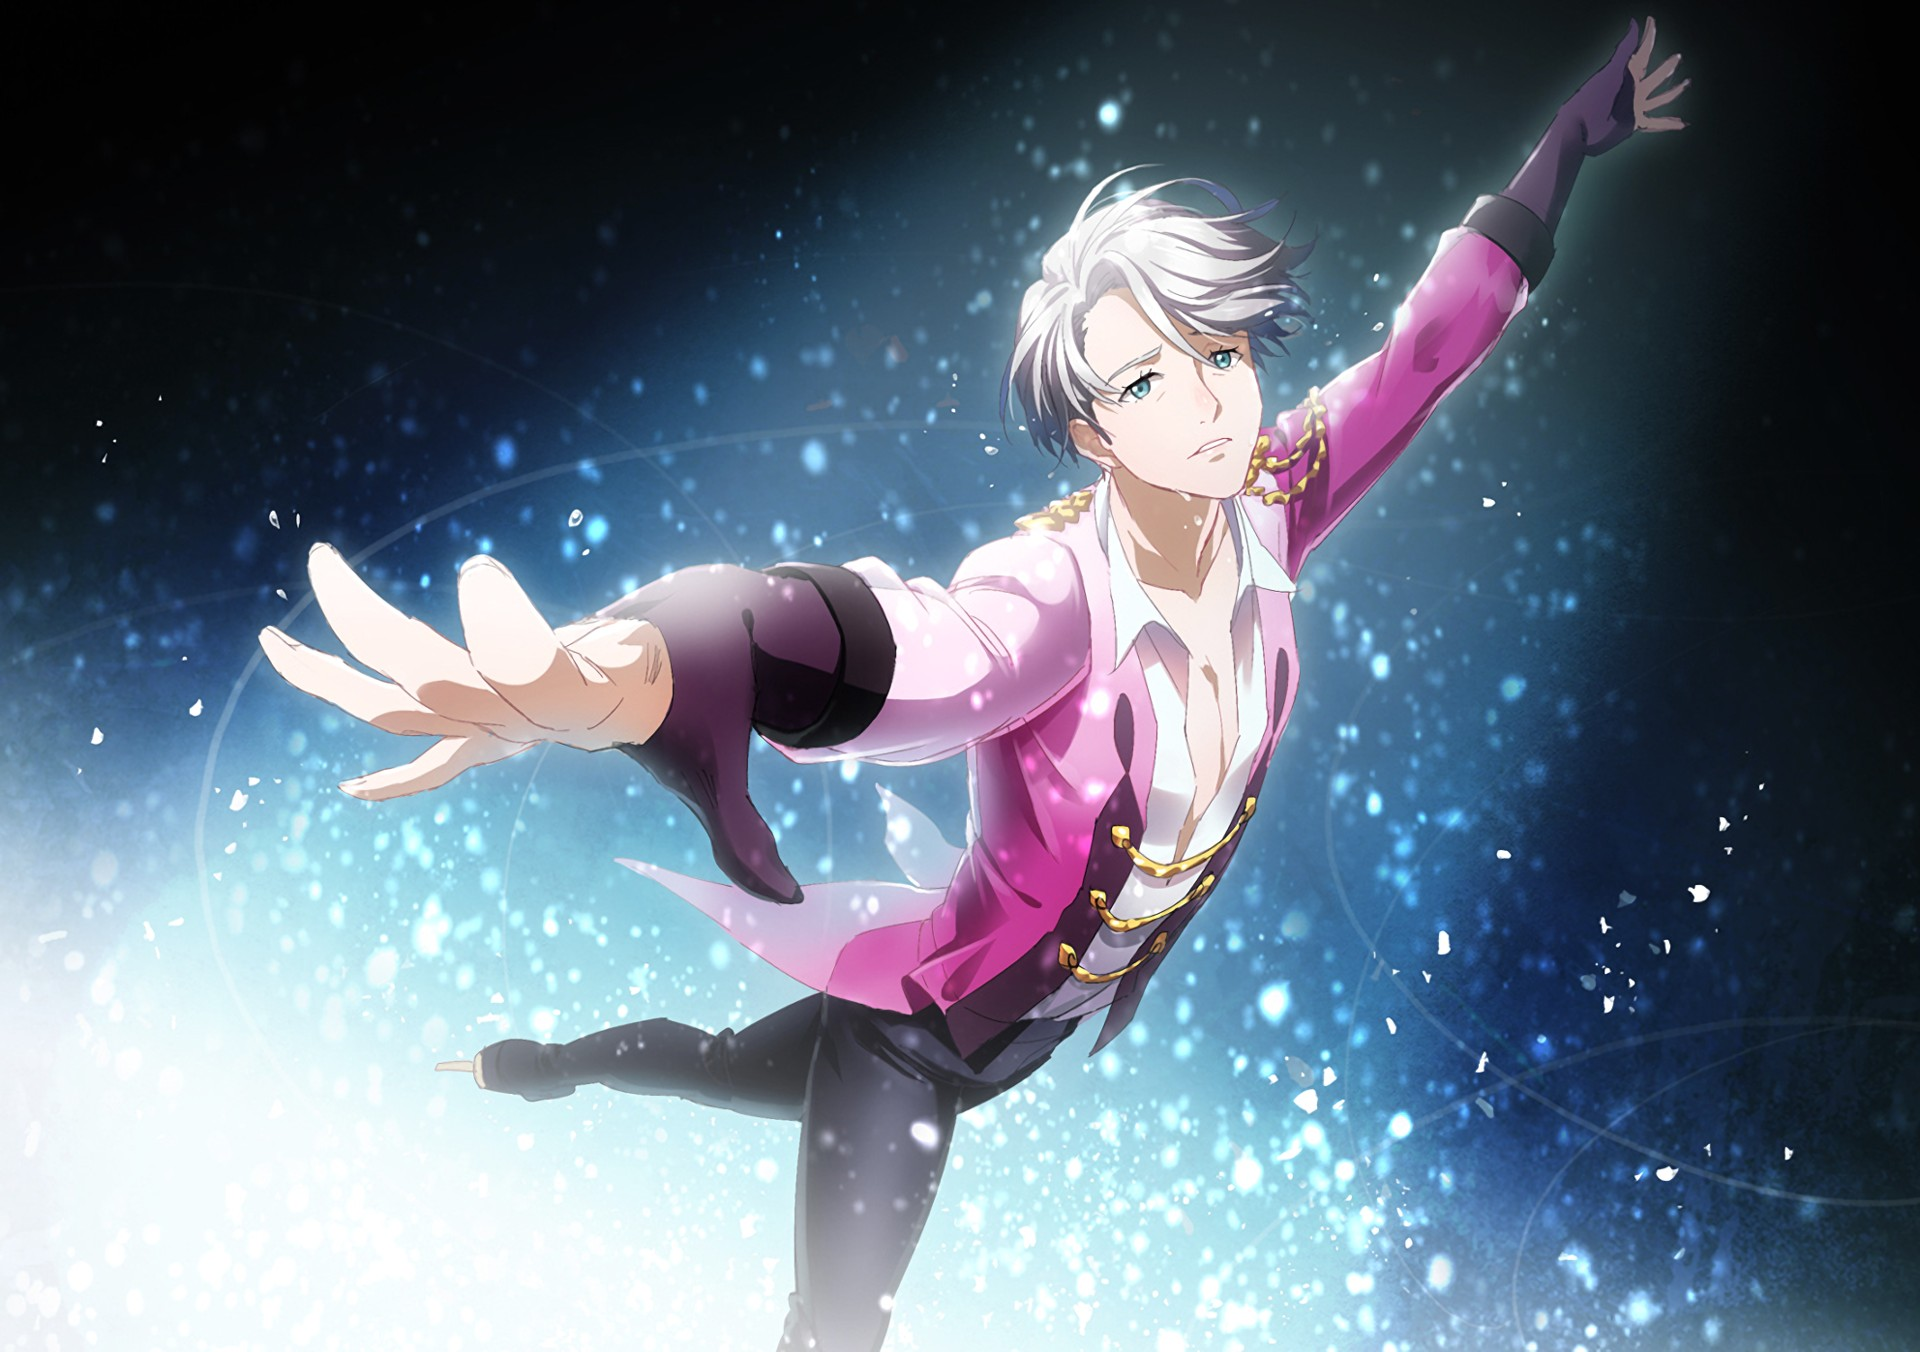 Yuri On Ice Wallpaper Download Free Stunning Backgrounds For